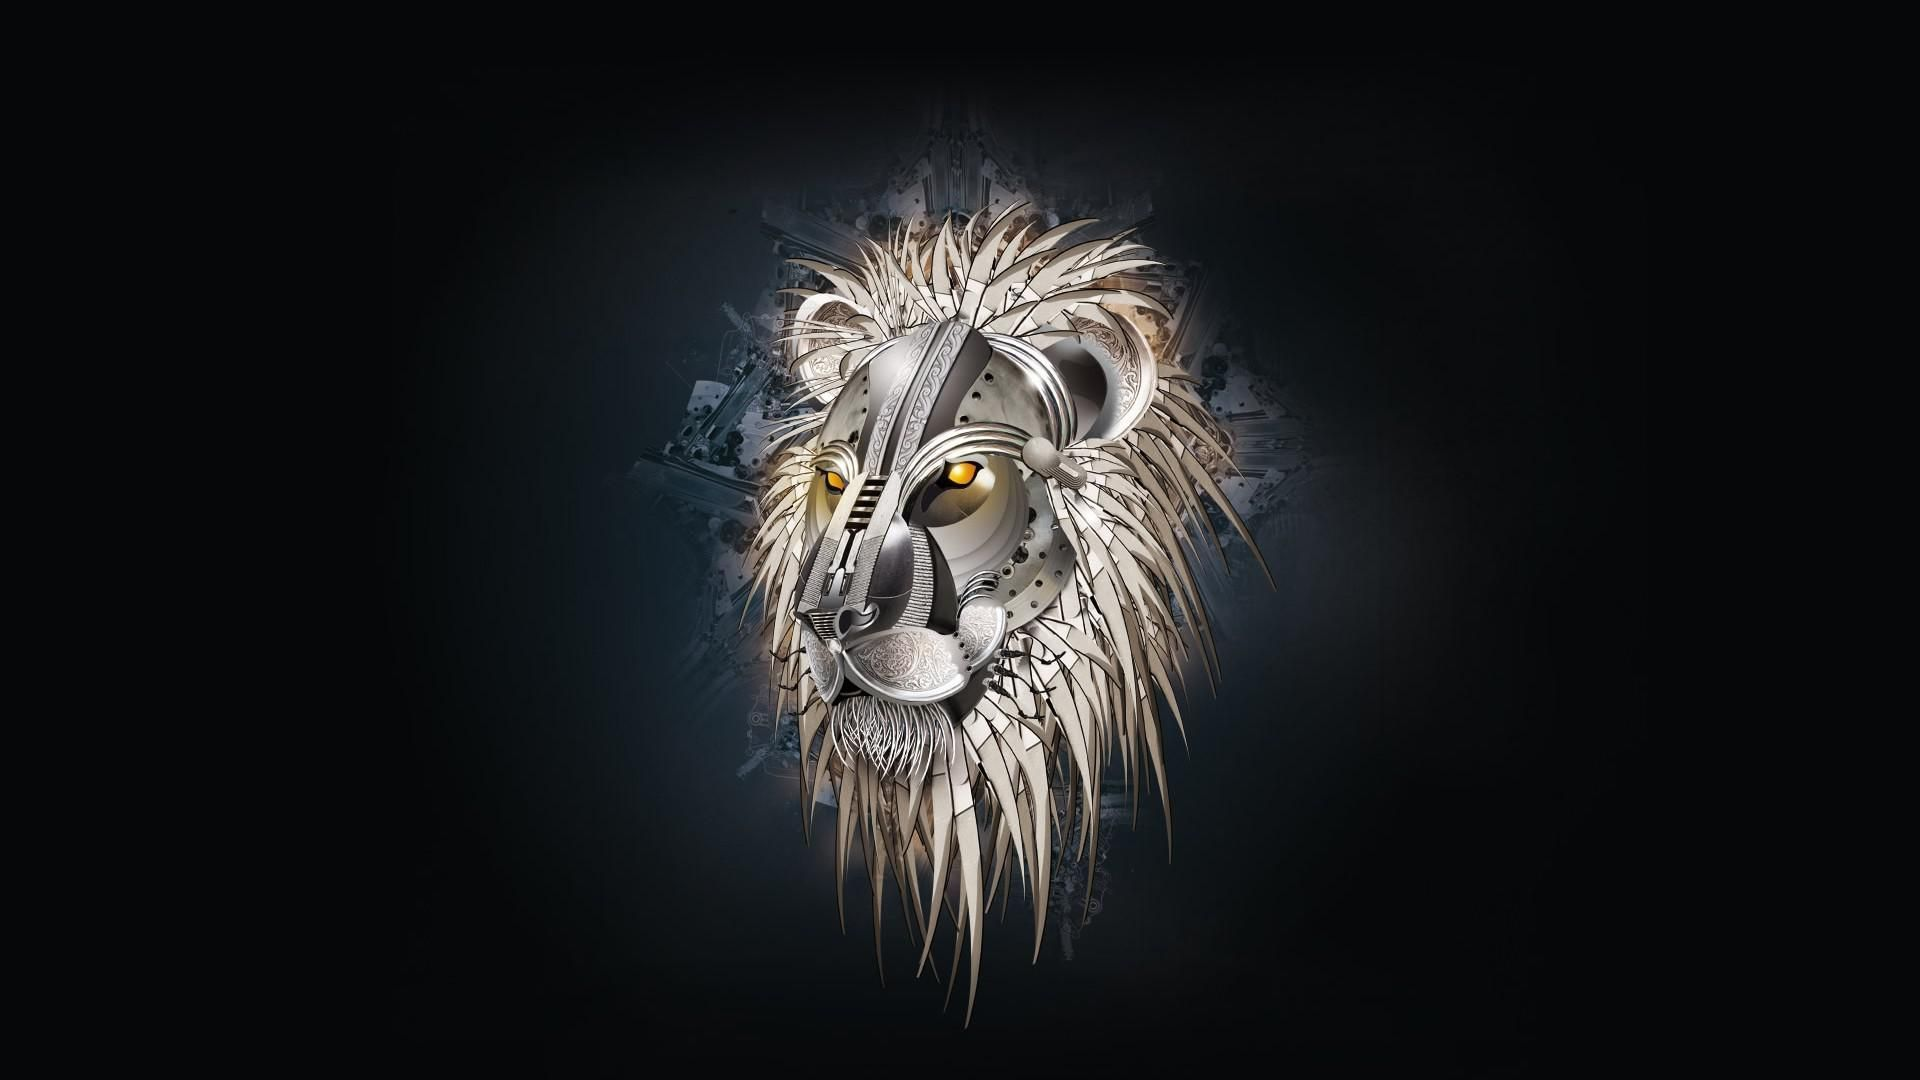 Lion Art download free wallpapers for pc in hd